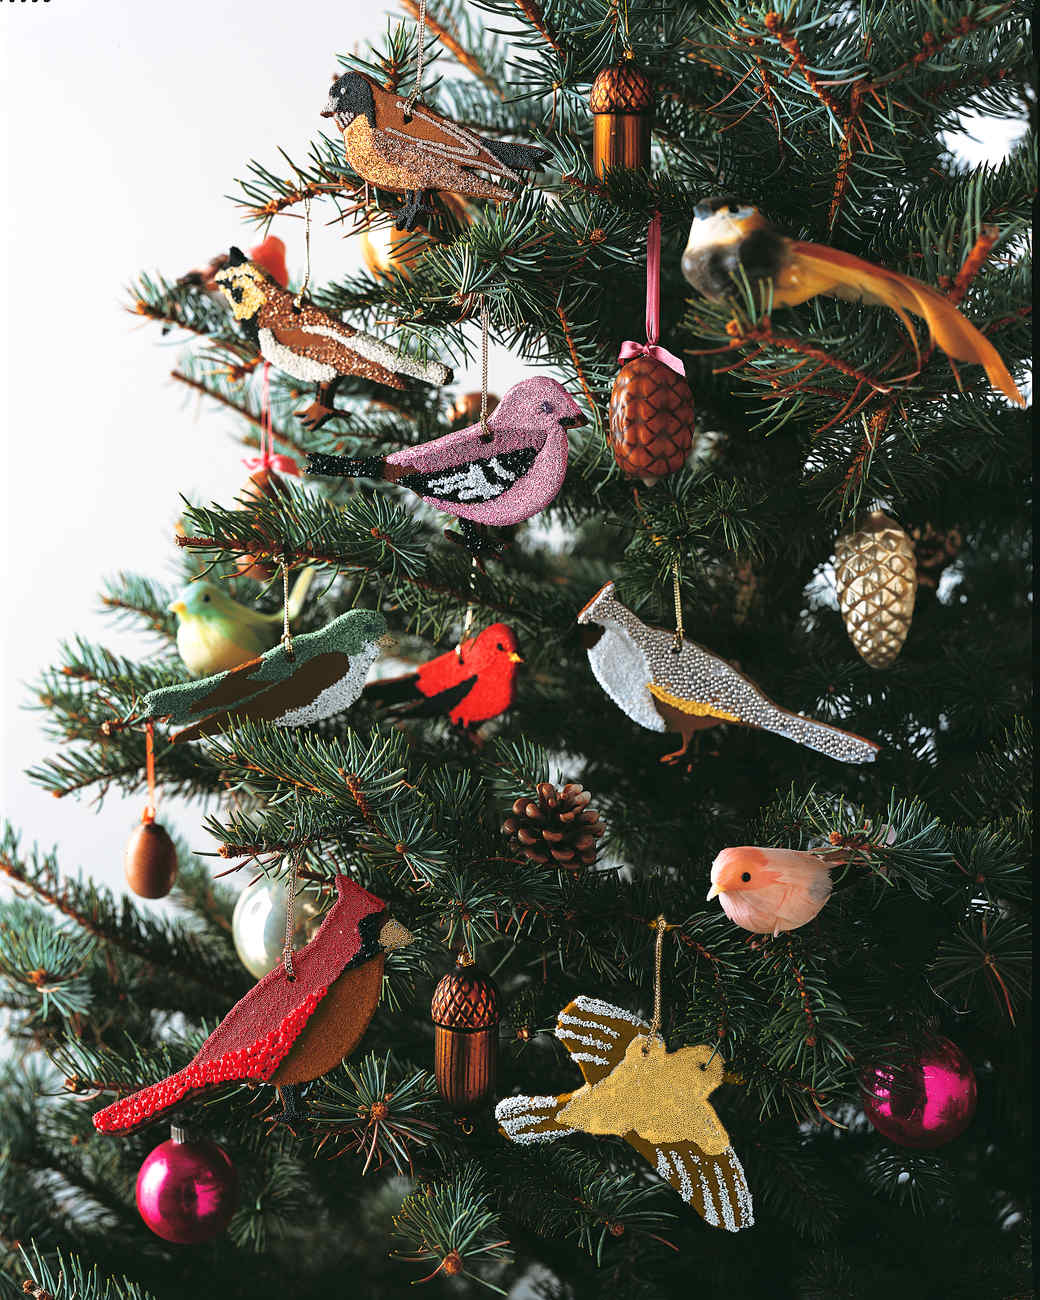 cinnamon bird ornament - Gingerbread Christmas Tree Decorations